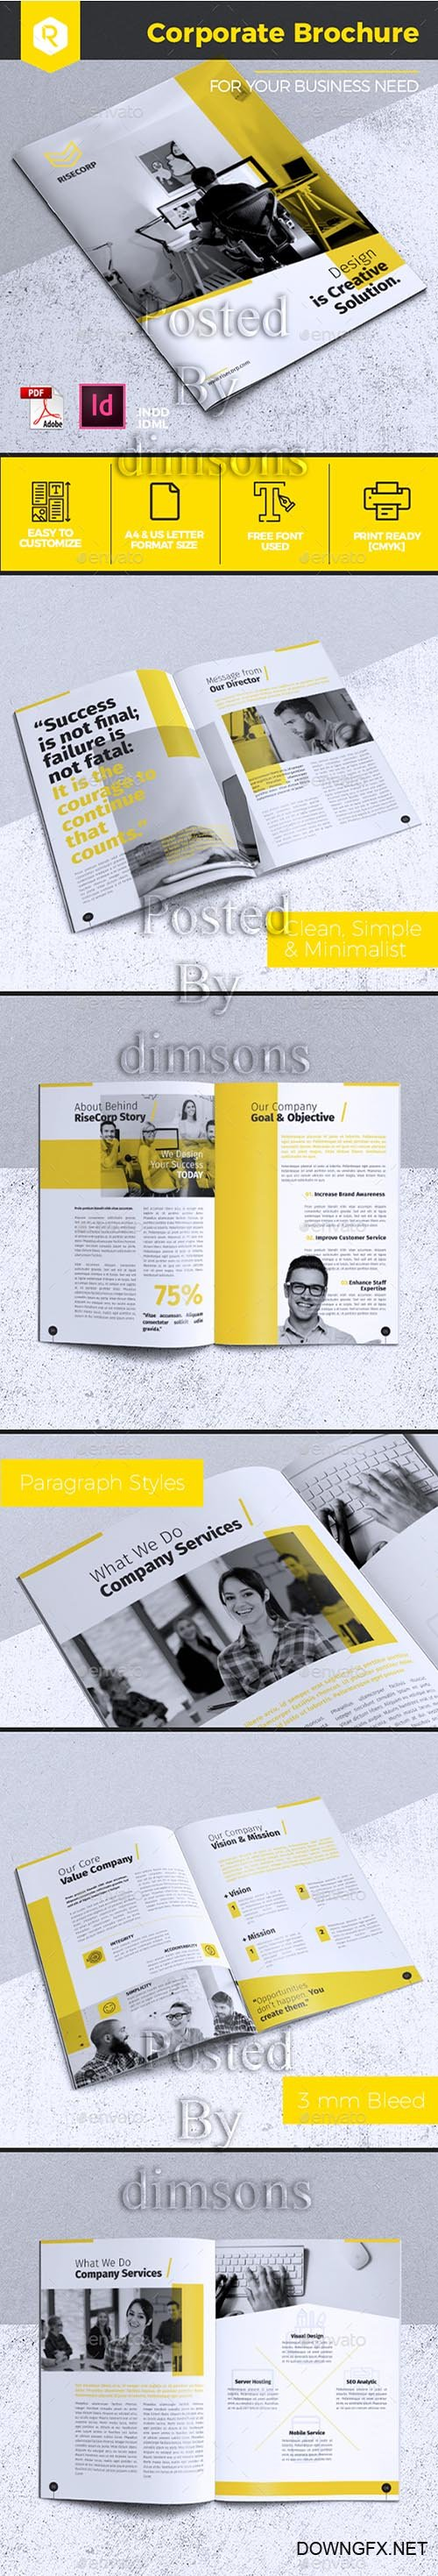 Creative Corporate Brochure Vol. 24 20144628